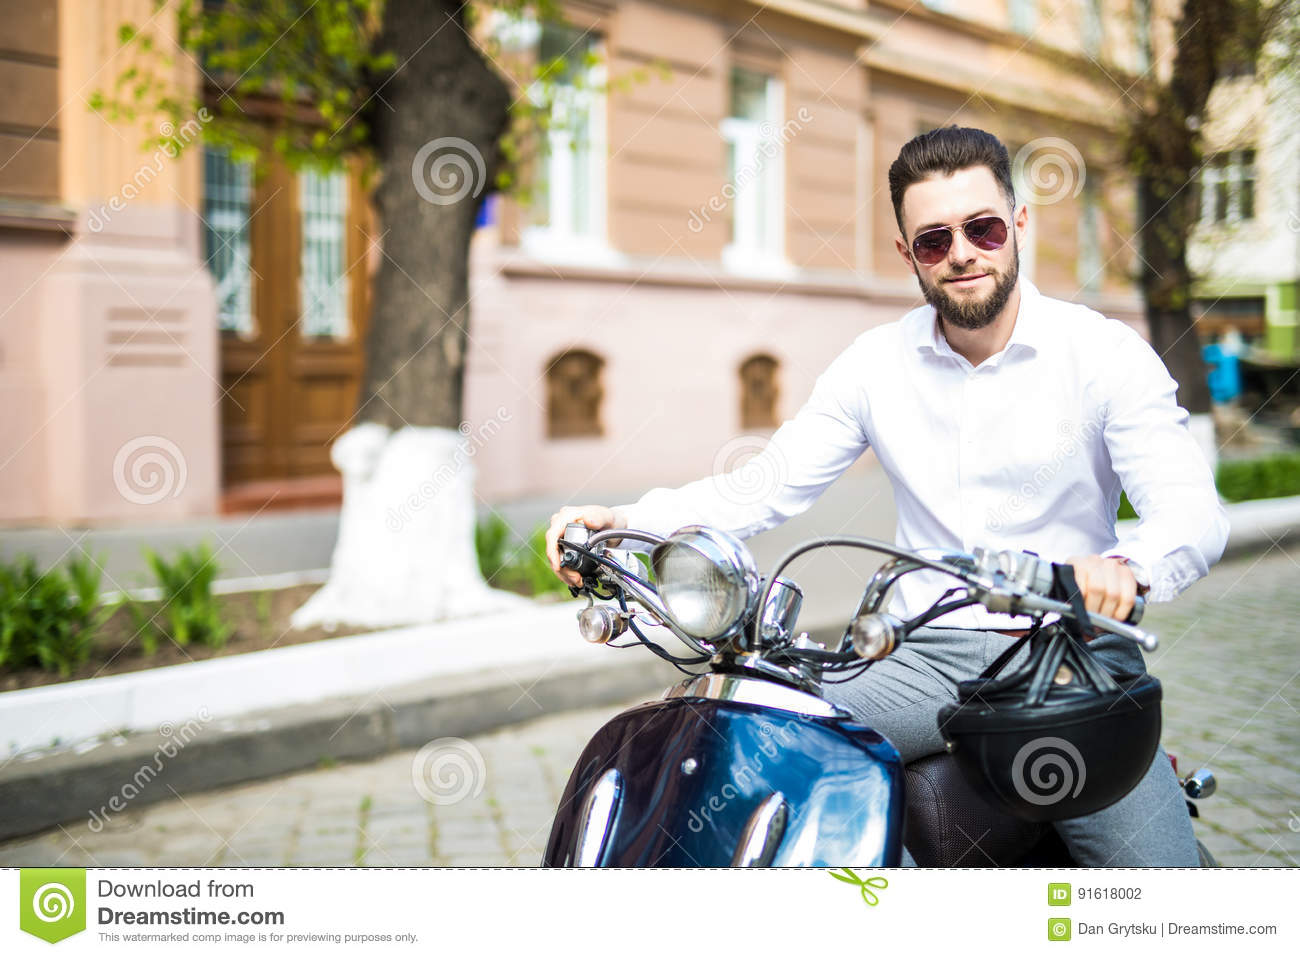 Portrait of serious young businessman on motorbike on city street